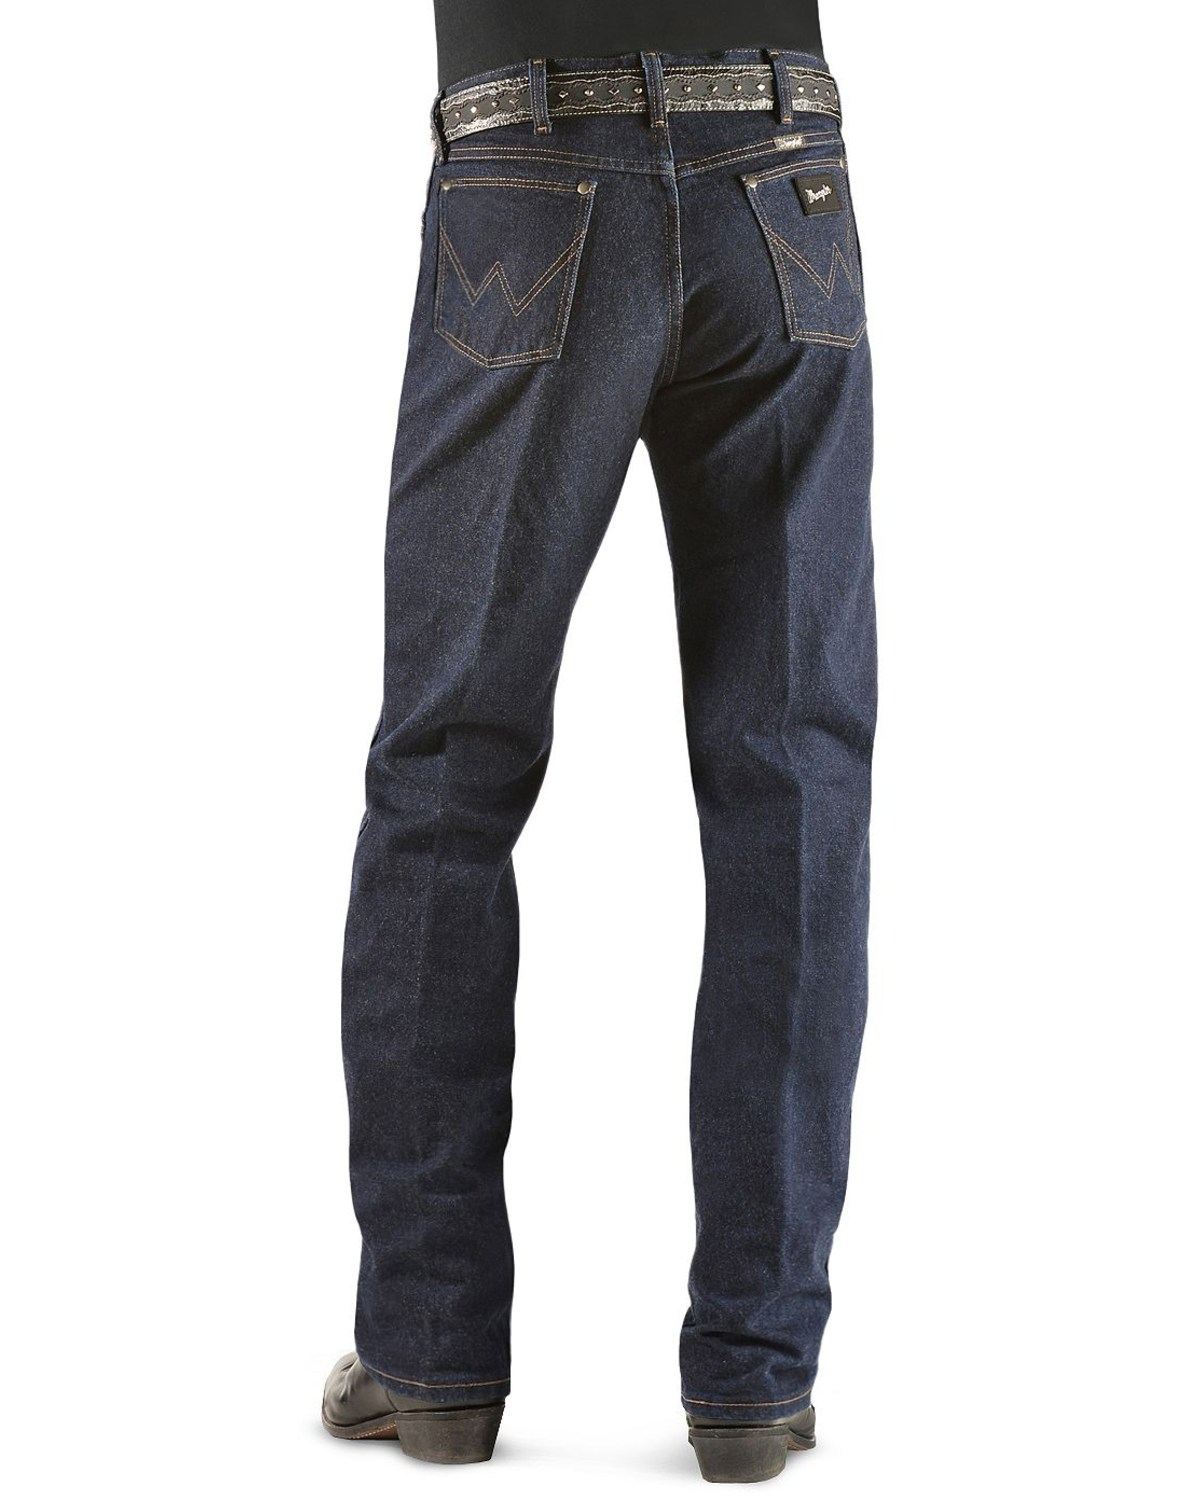 bb986f6a652 Wrangler Original Fit Men's Silver Edition Jeans